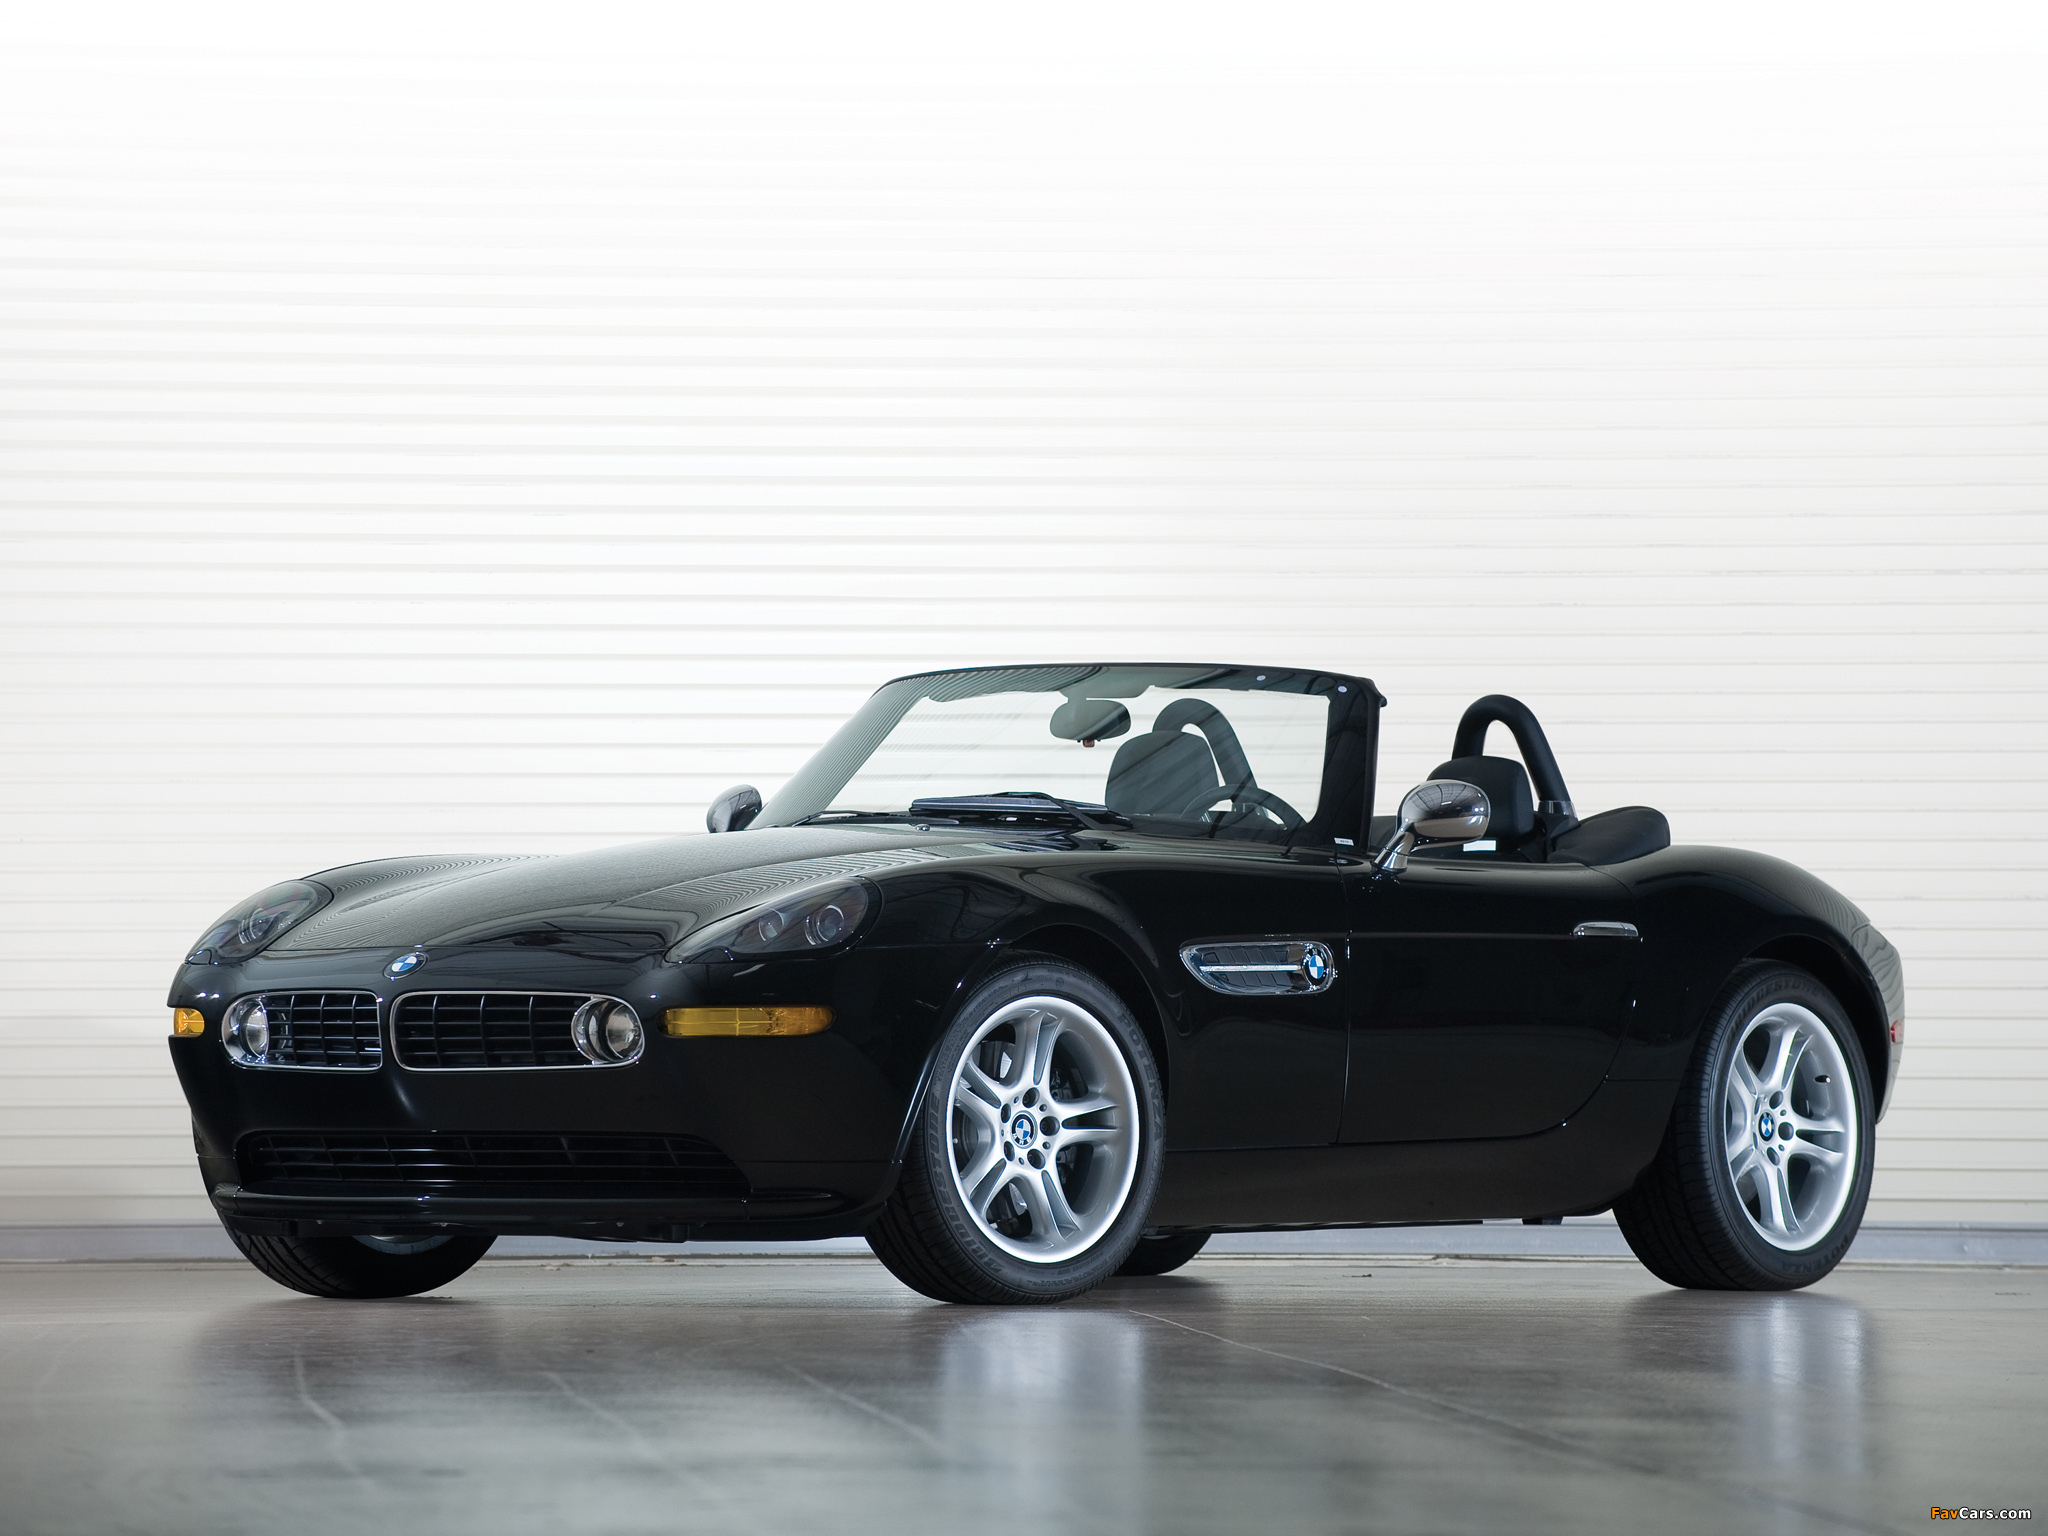 Bmw Z8 Us Spec E52 2000 03 Images 2048x1536